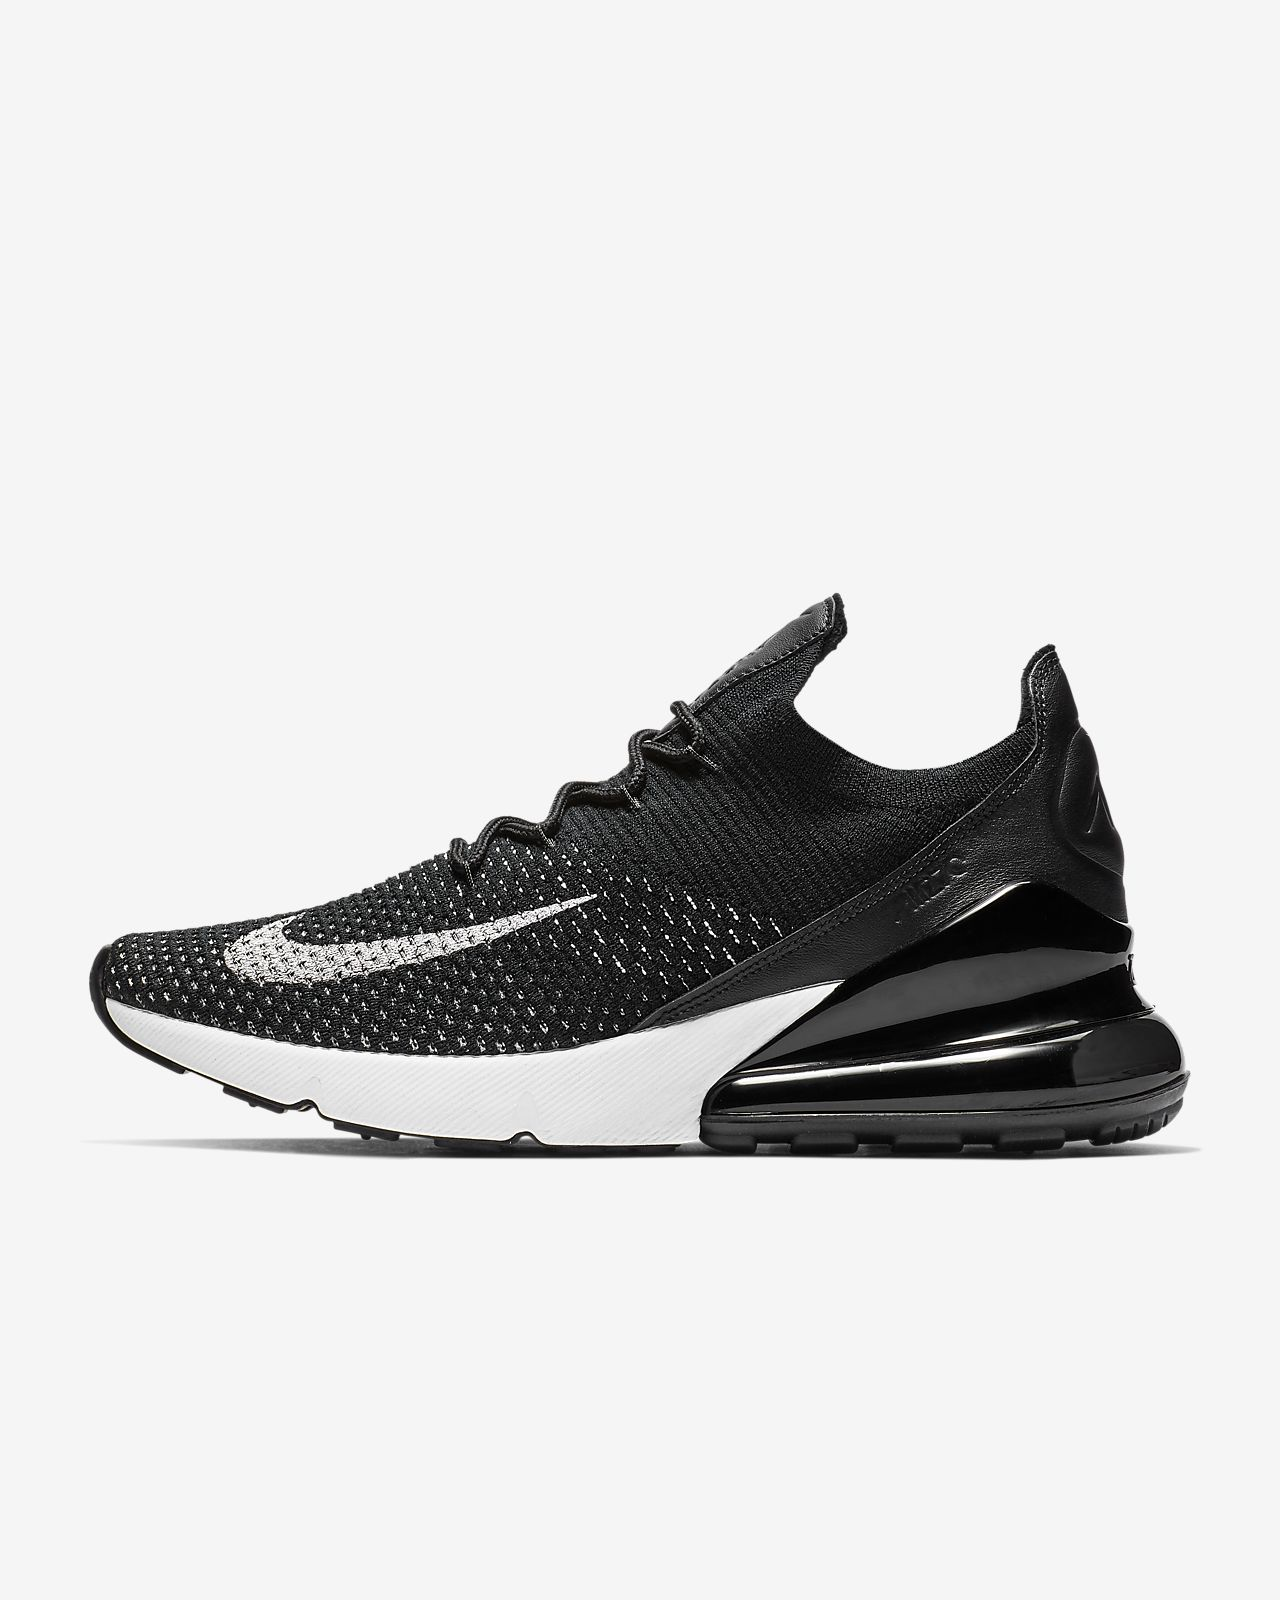 Air Max Thea Ultra - Chaussures - Low-dessus Et Chaussures De Sport Nike PisSvO